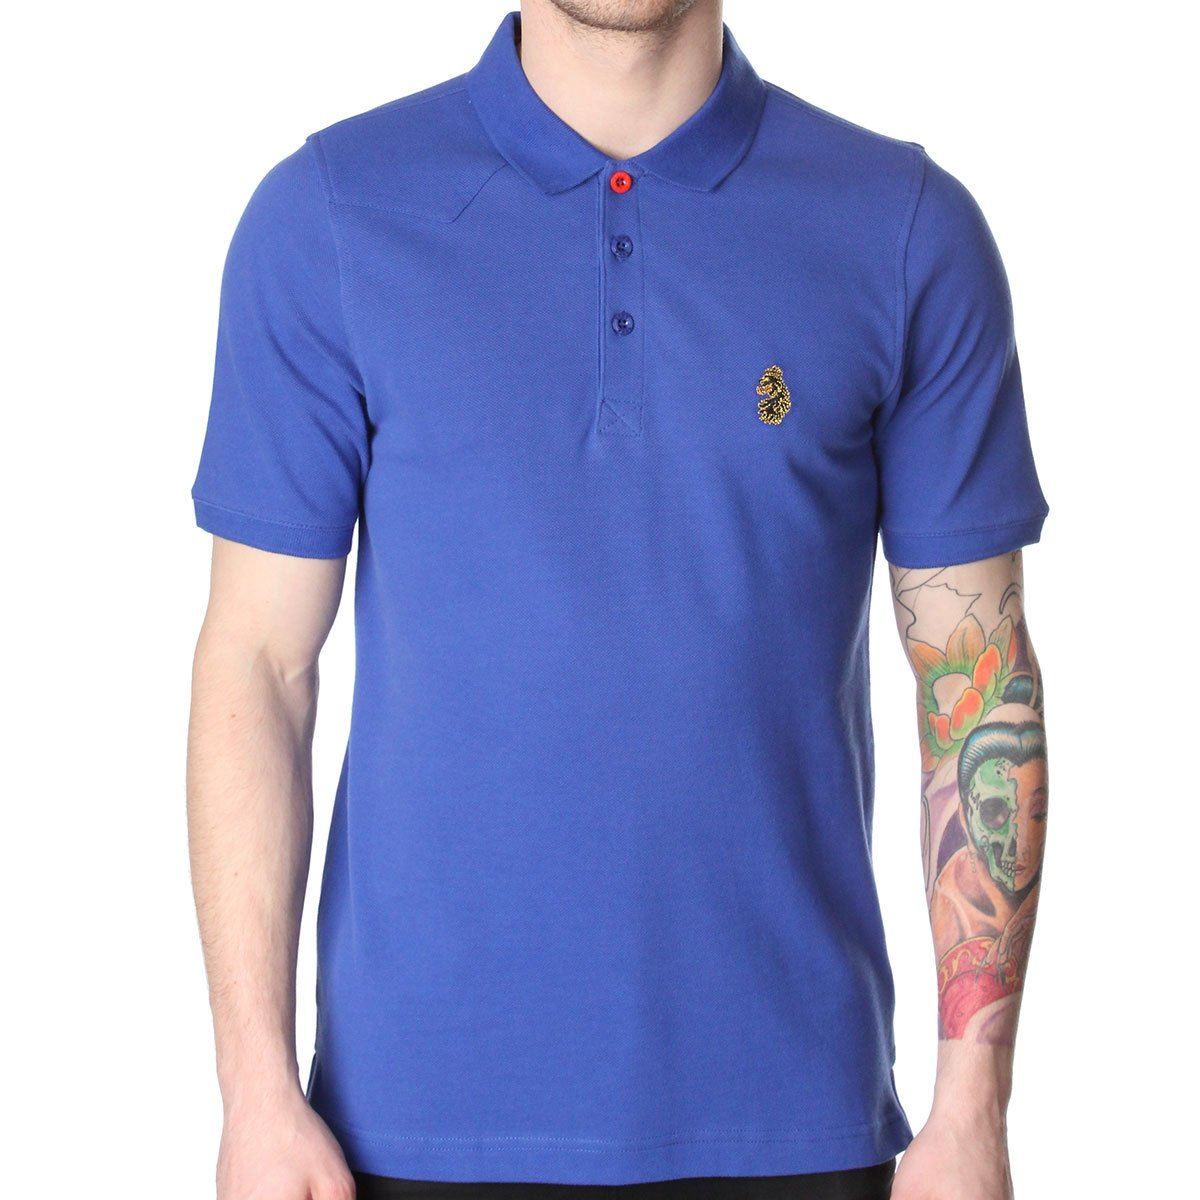 Luke 1977 freddy polo t shirt polo t shirts from the for Luke donald polo shirts